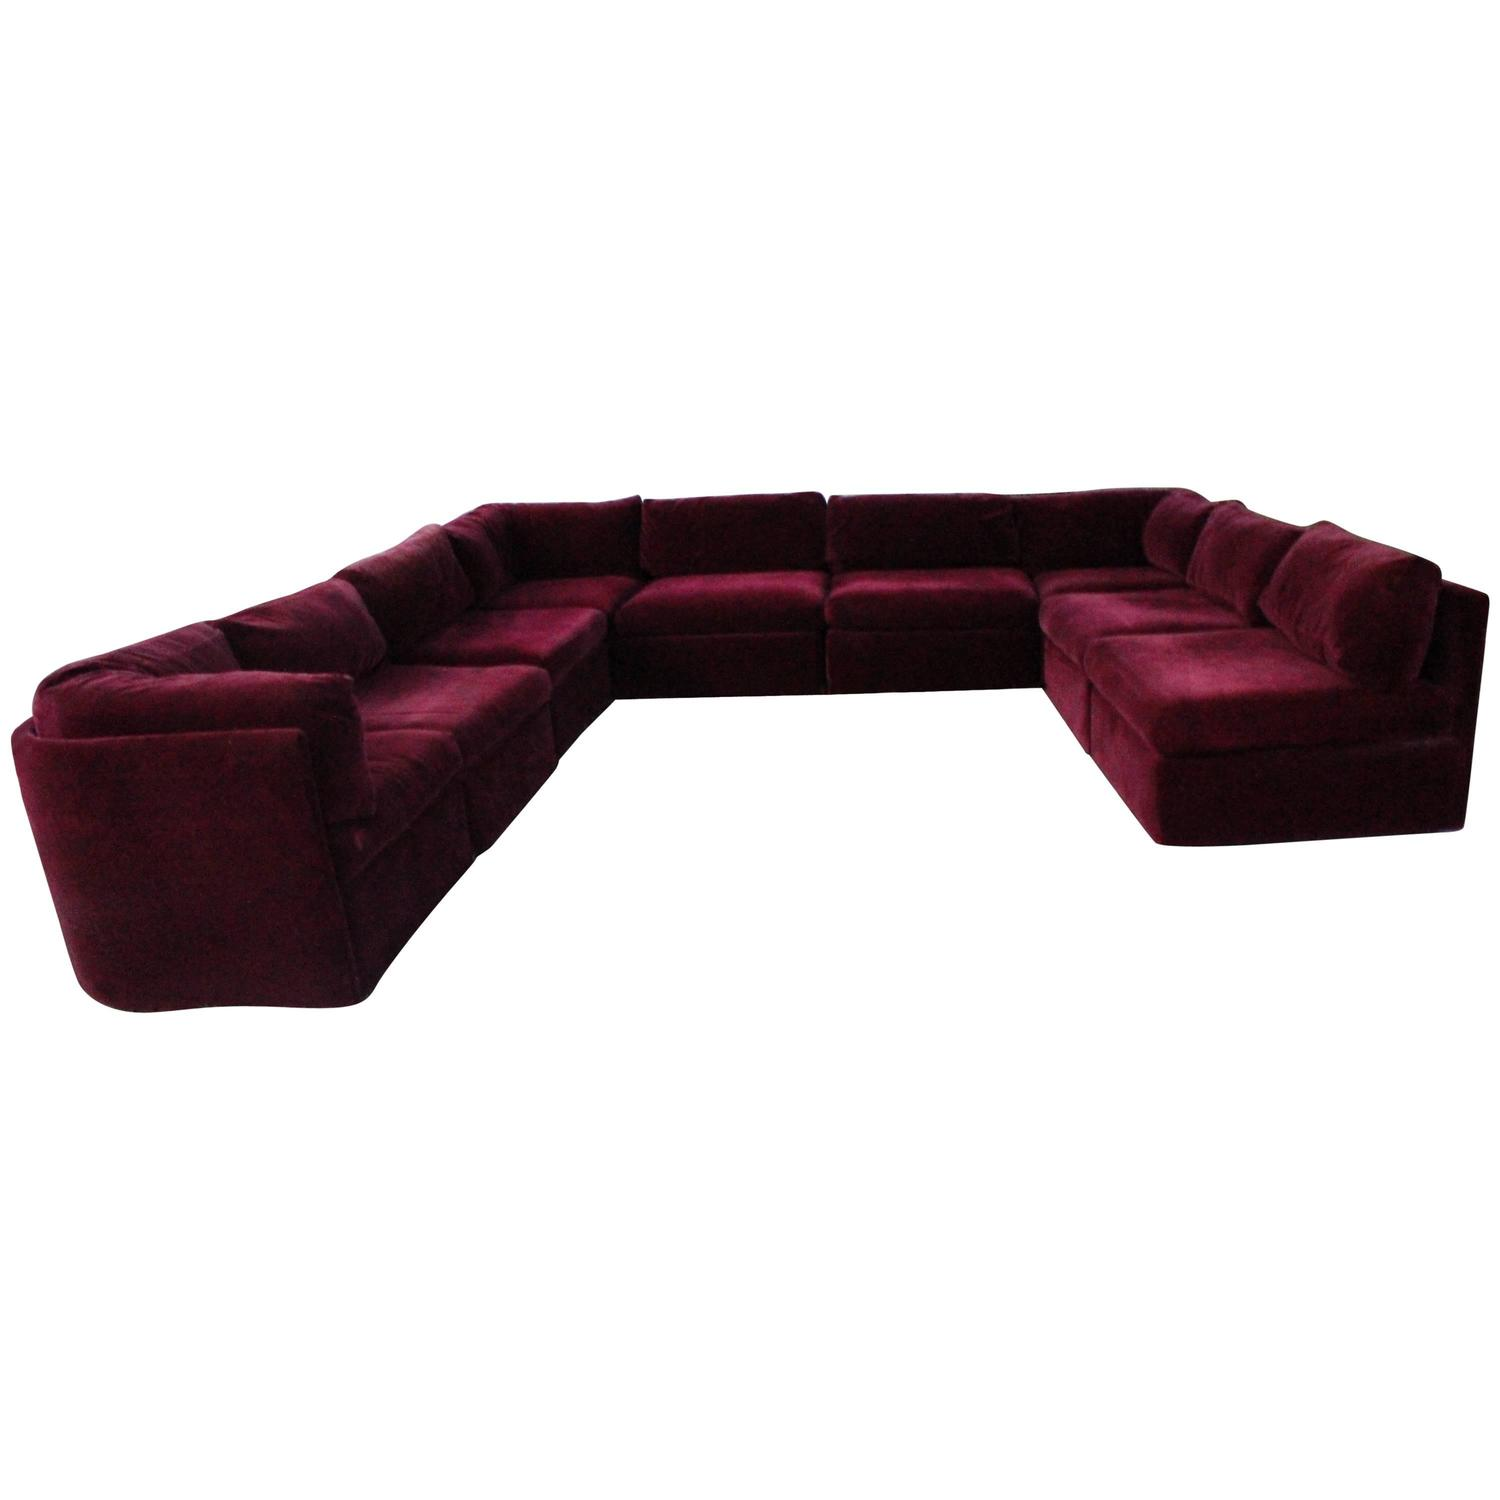 Milo Baughman For Thayer Coggin Tagged Nine Piece Sectional Sofa Couch Vintage At 1stdibs